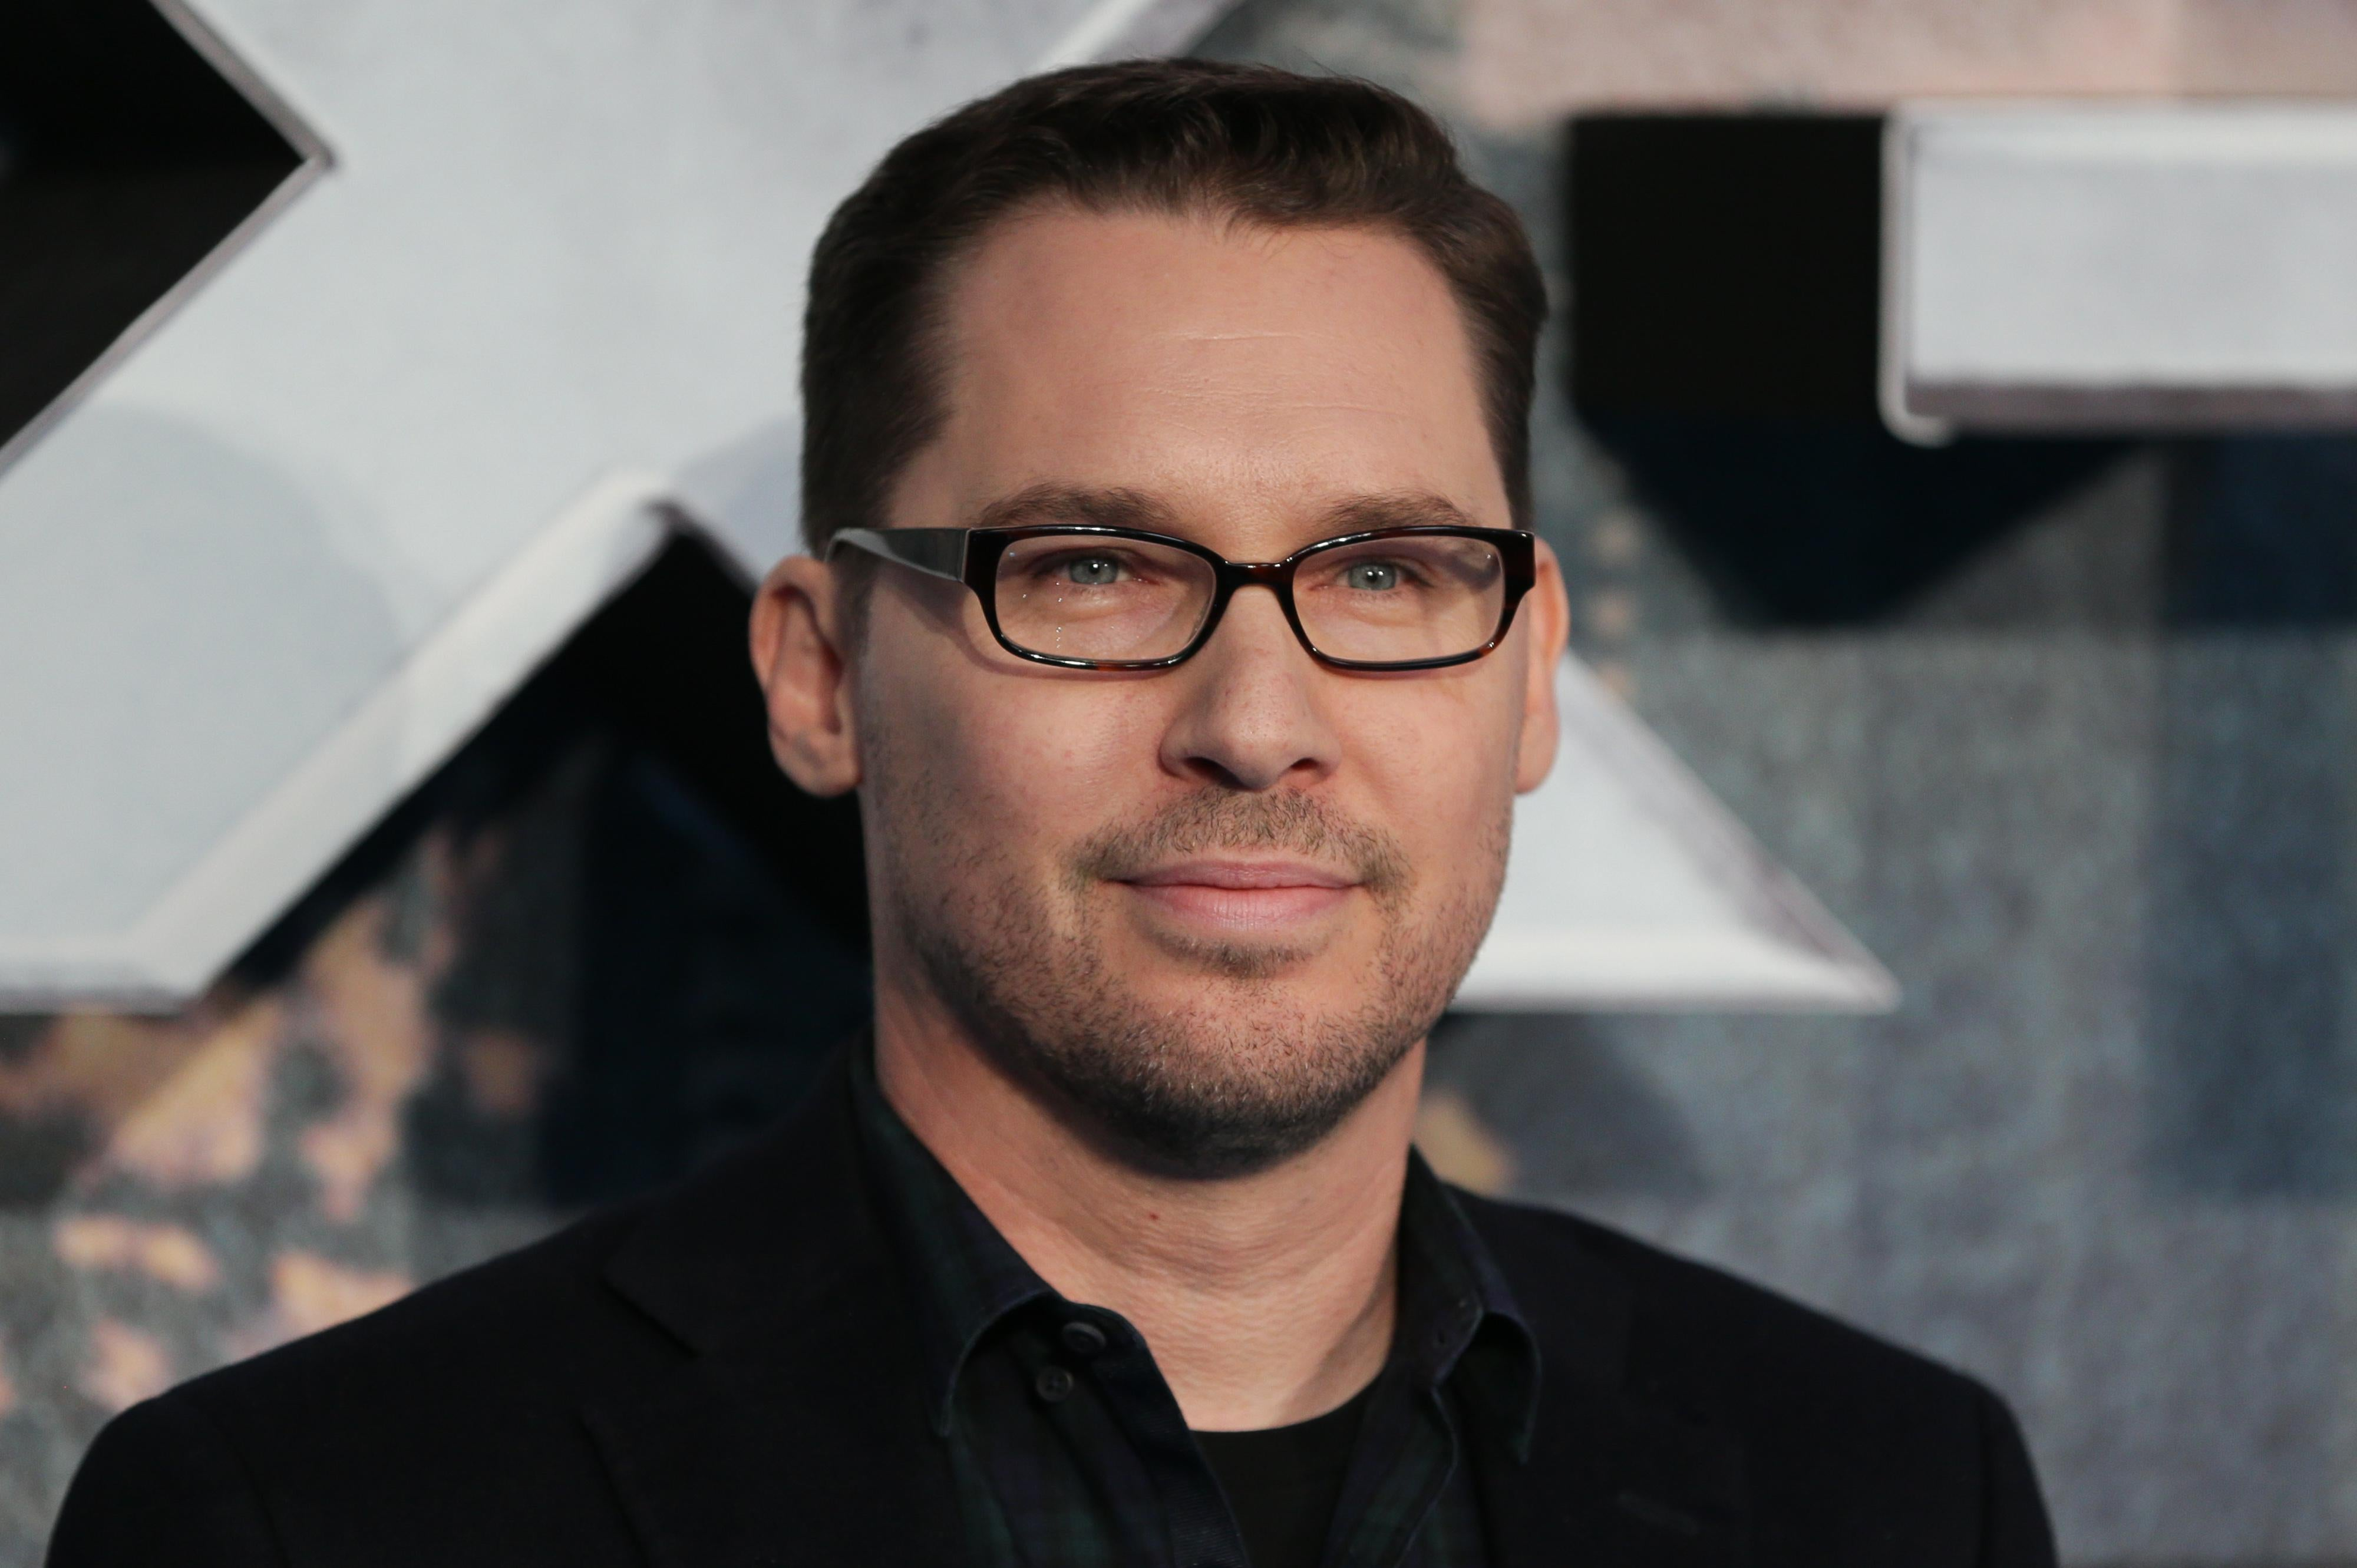 Bryan Singer poses in suit and black rimmed glasses.